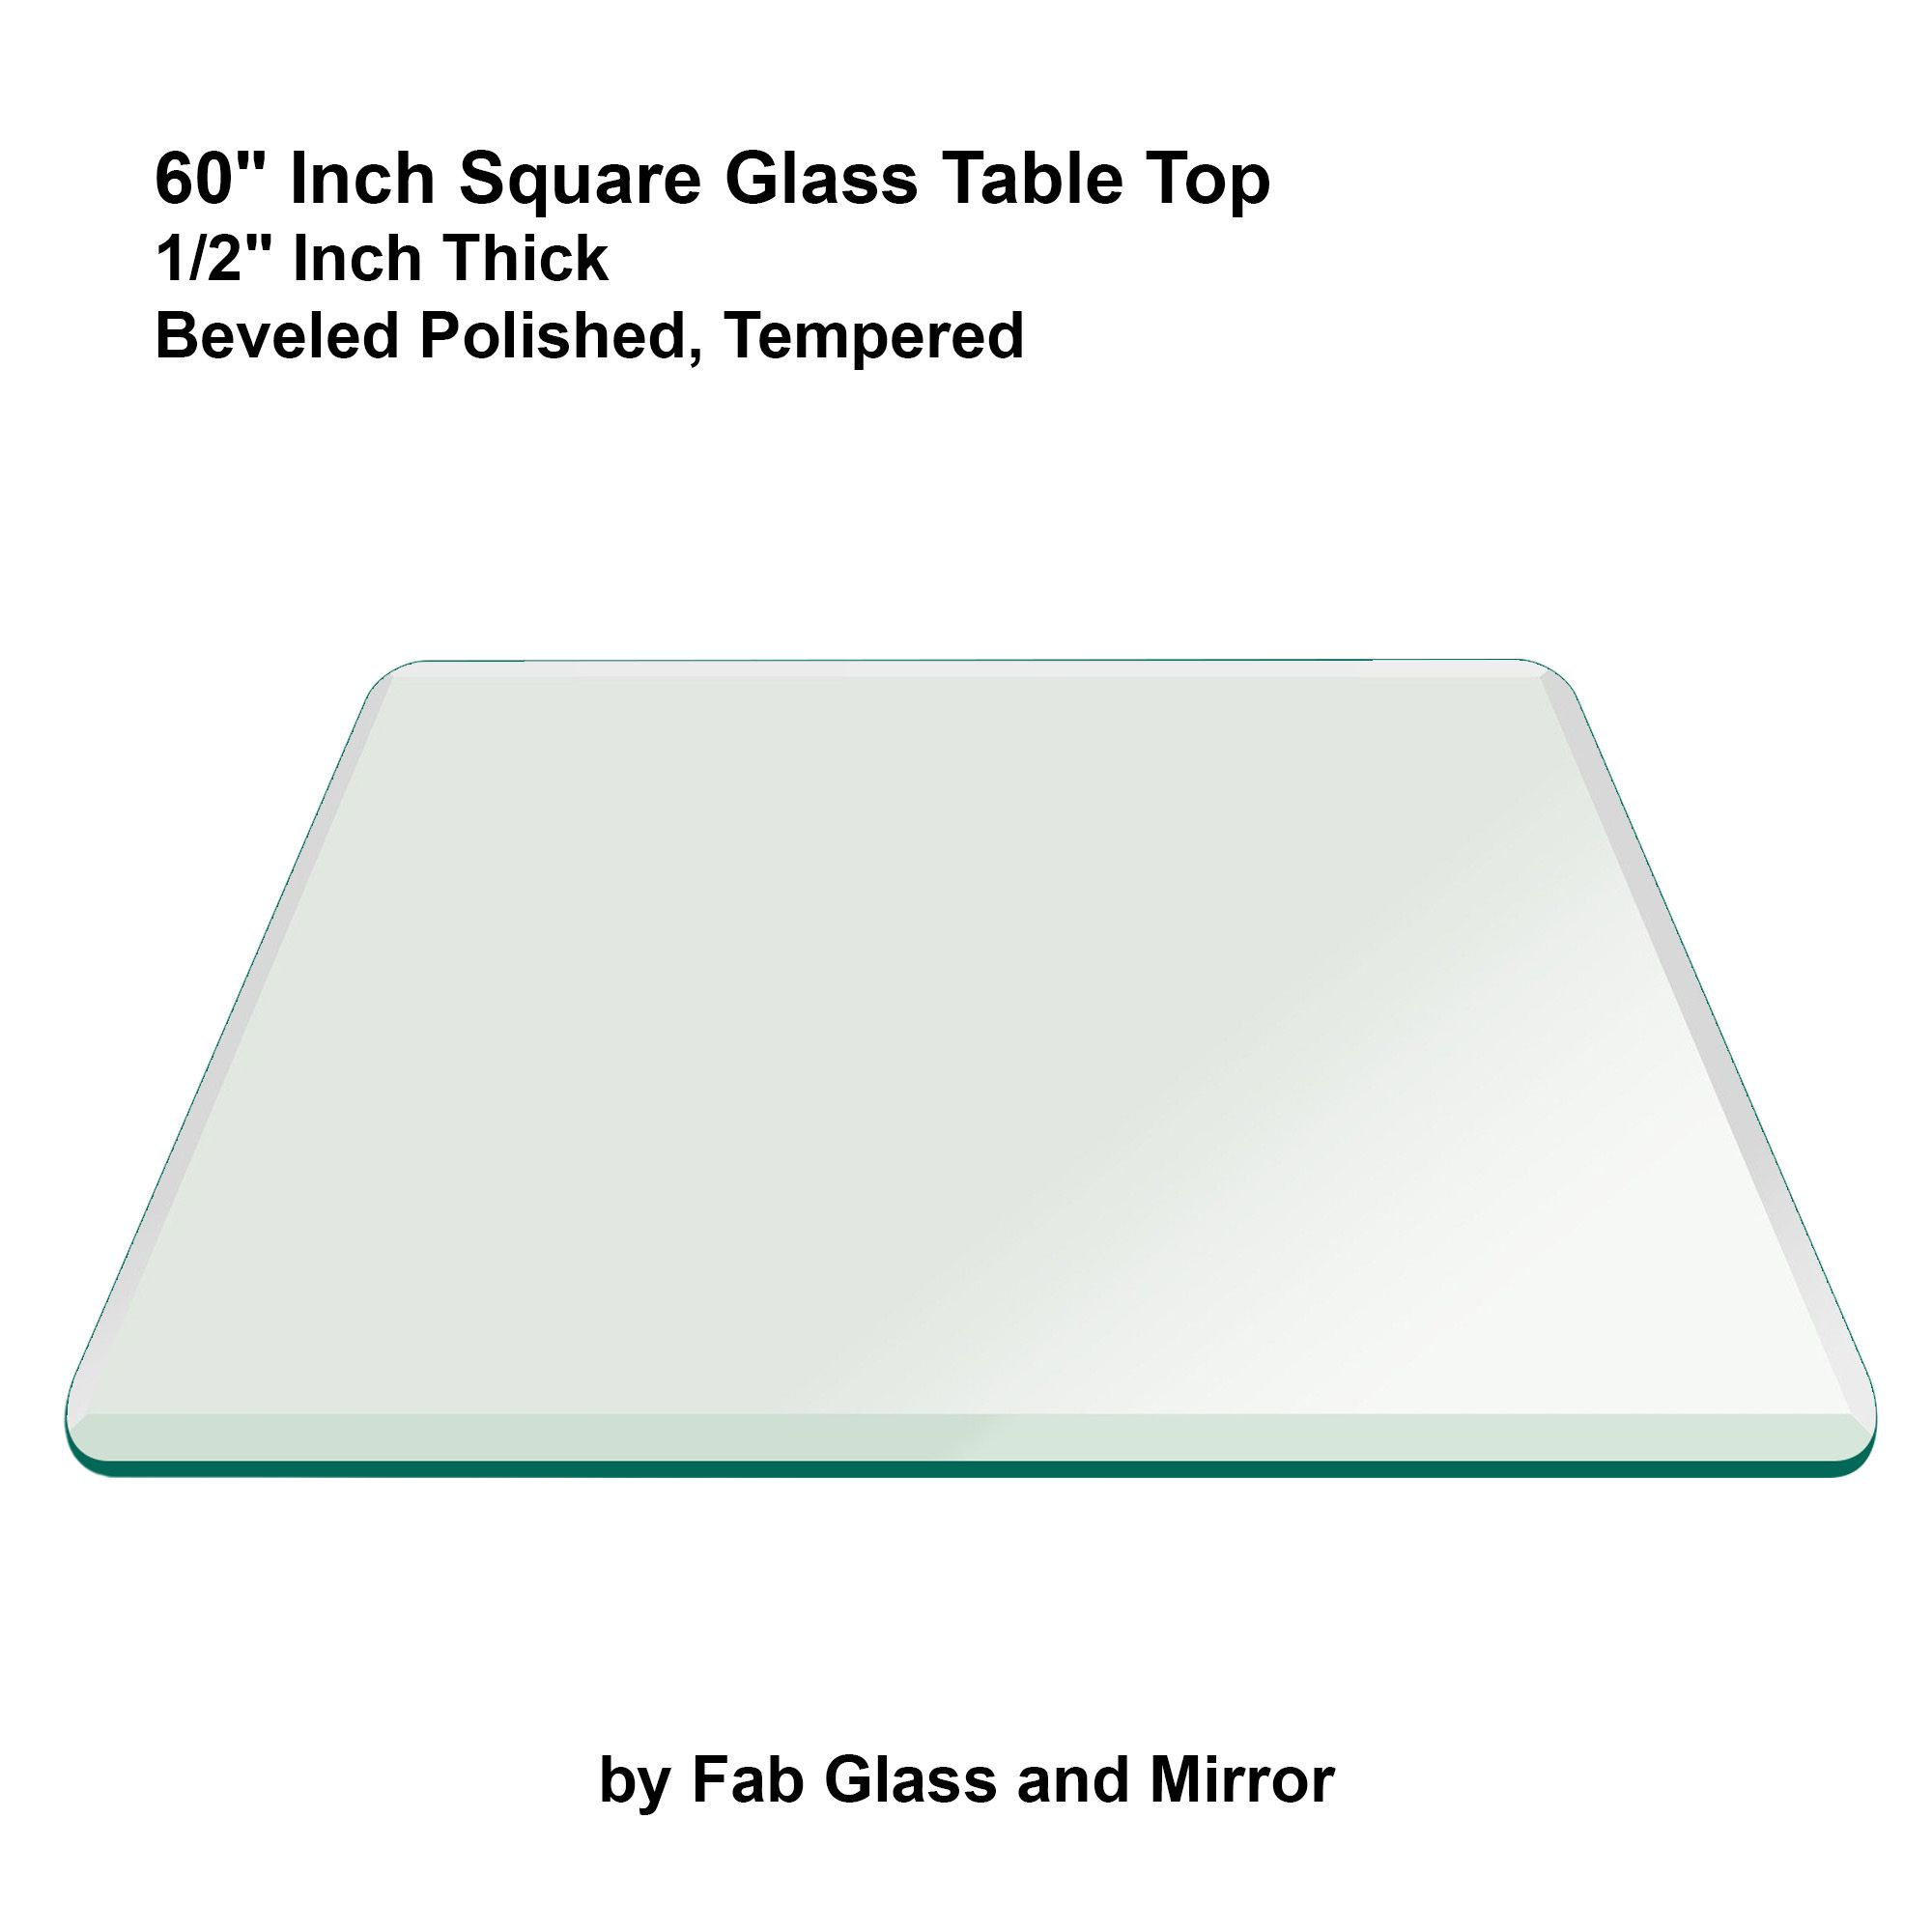 60 Square Glass Table Top Glass Top Table Glass Table Table Top